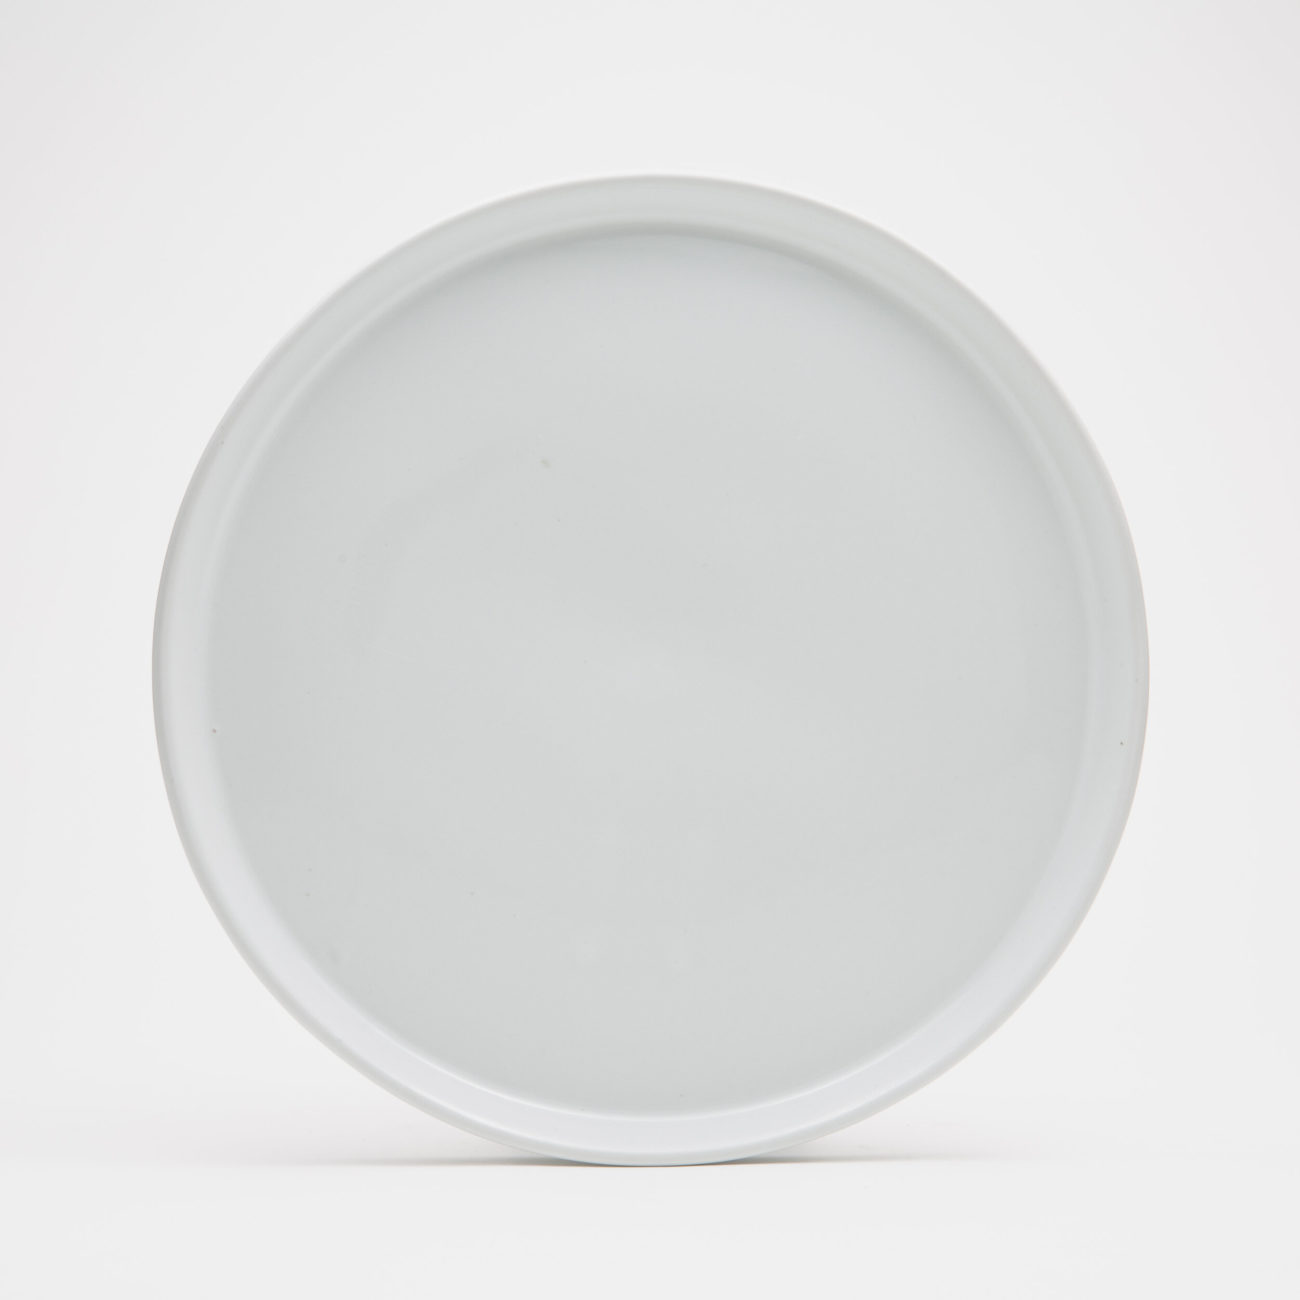 Large Ceramic Dinner Plate, White